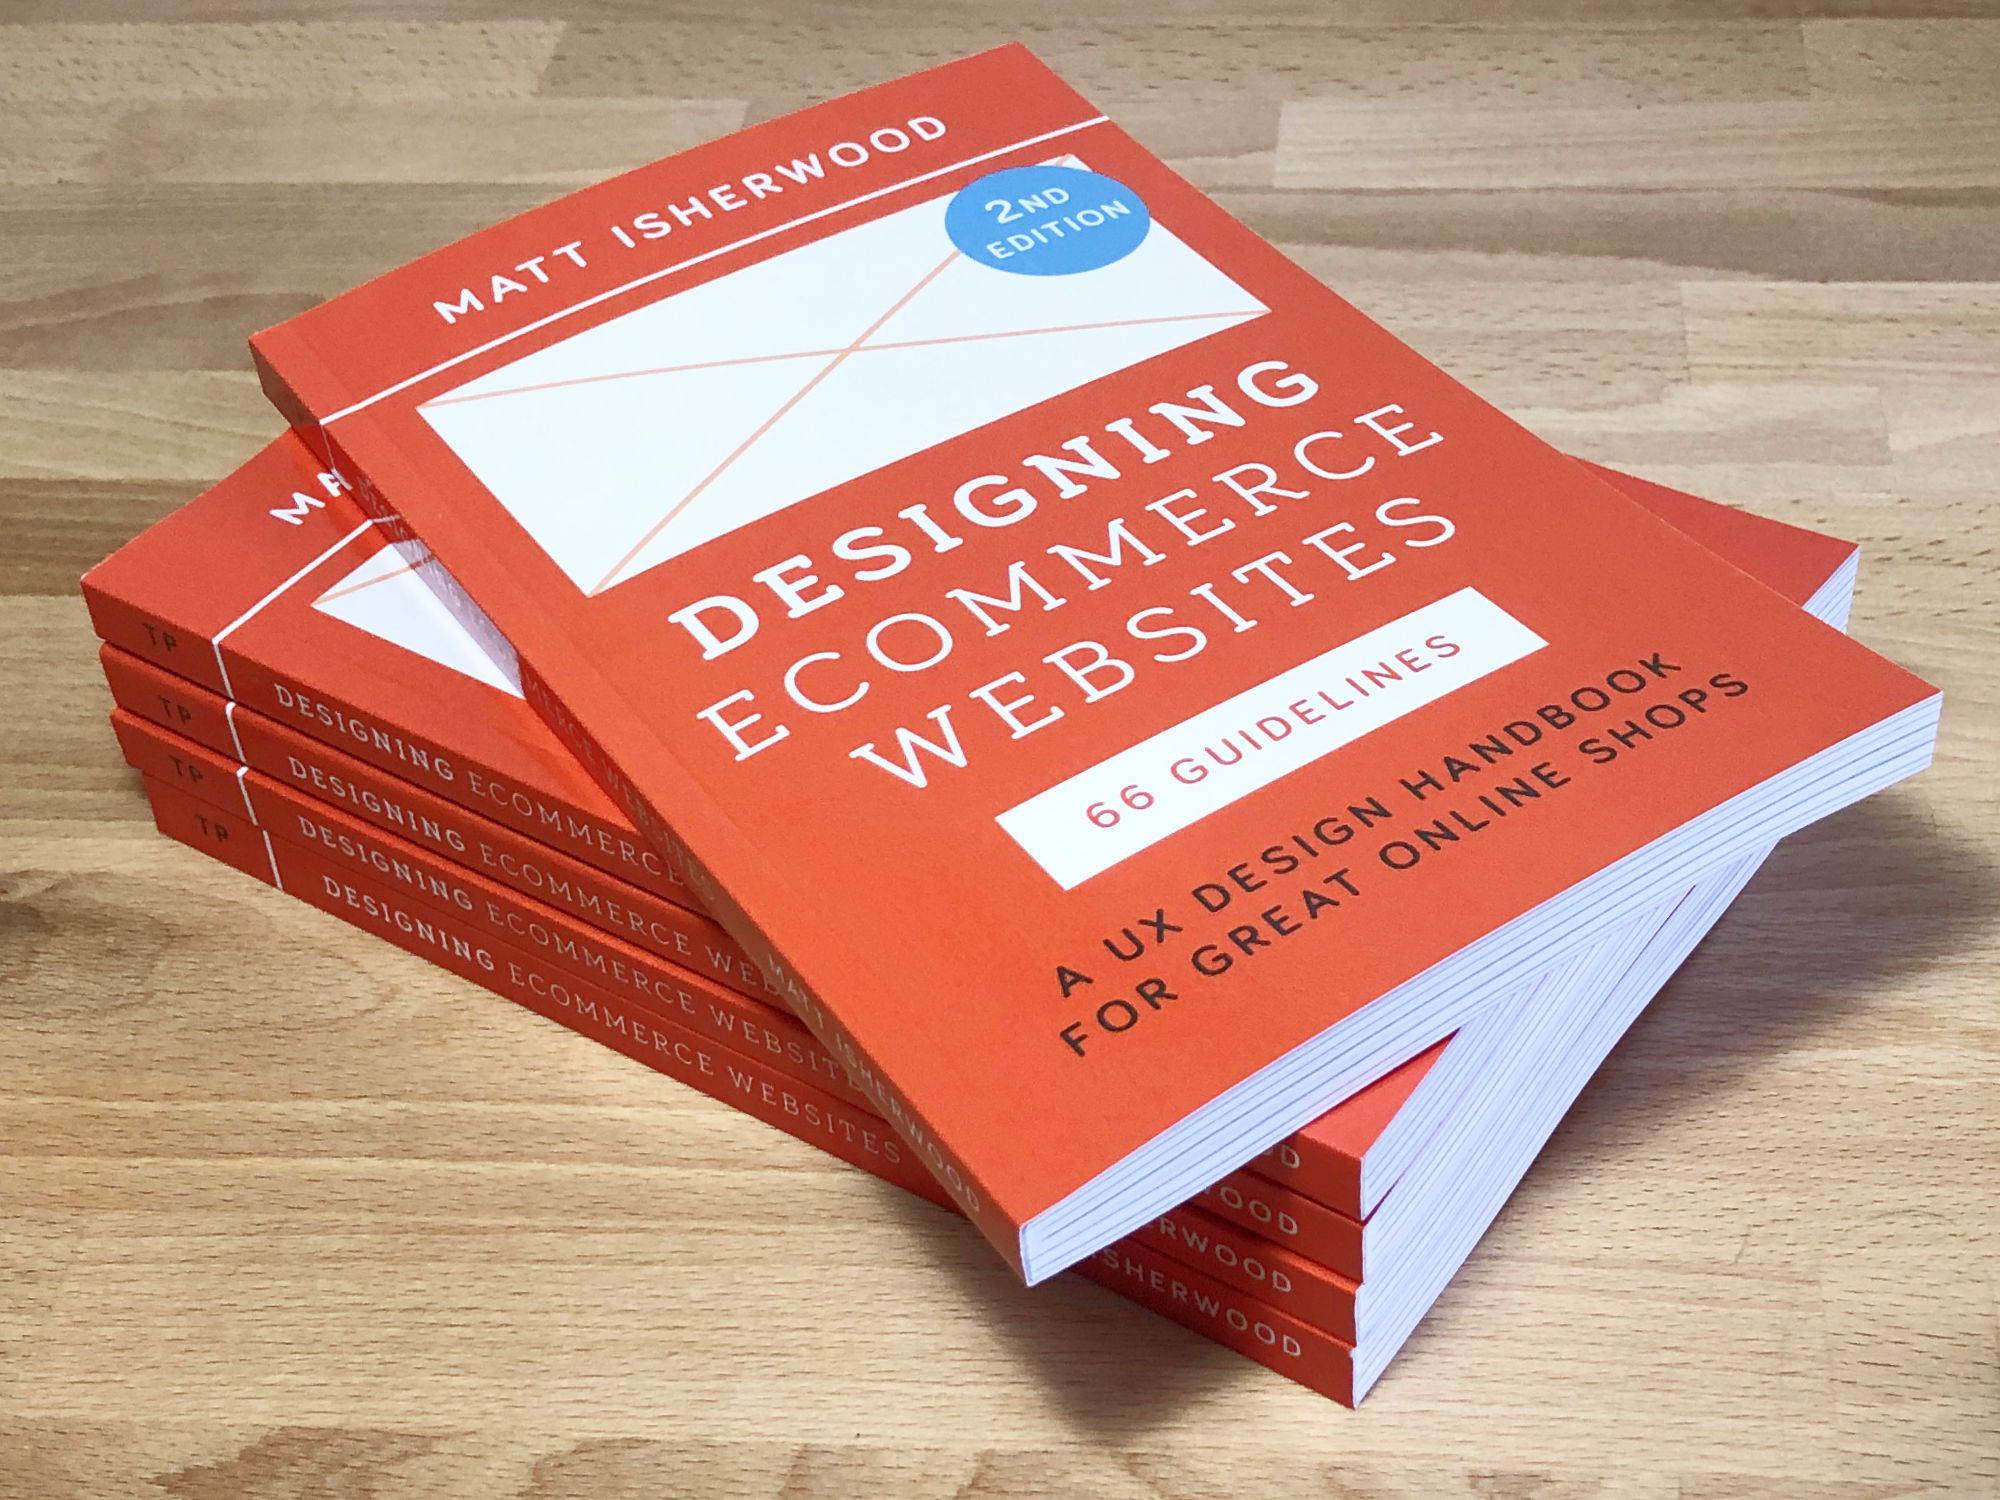 Five copies of the Designing Ecommerce Websites book